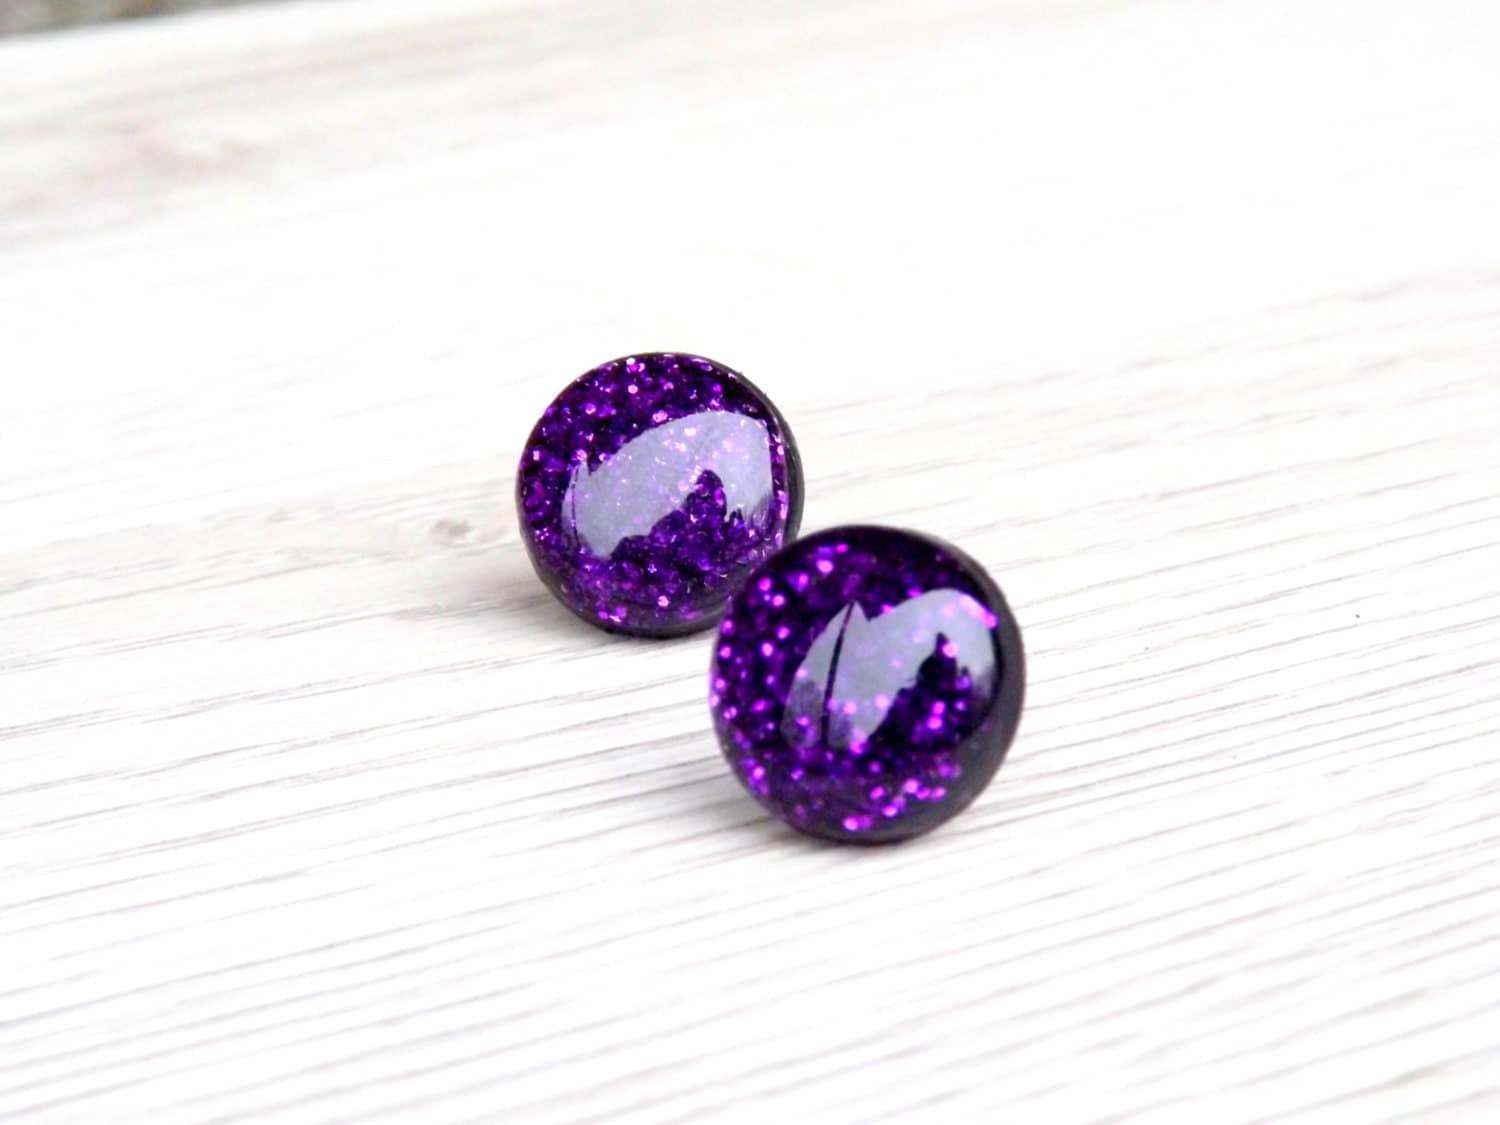 Purple Glitter Stud Earrings Glitter Earrings Glitter. 22 Karat Gold Chains. Sterling Silver Charms. Platinum Male Wedding Band. Sterling Silver Hinged Bangle Bracelet. Classic Vintage Engagement Rings. Jewlery Chains. Air Force Necklace. Emerald Rings